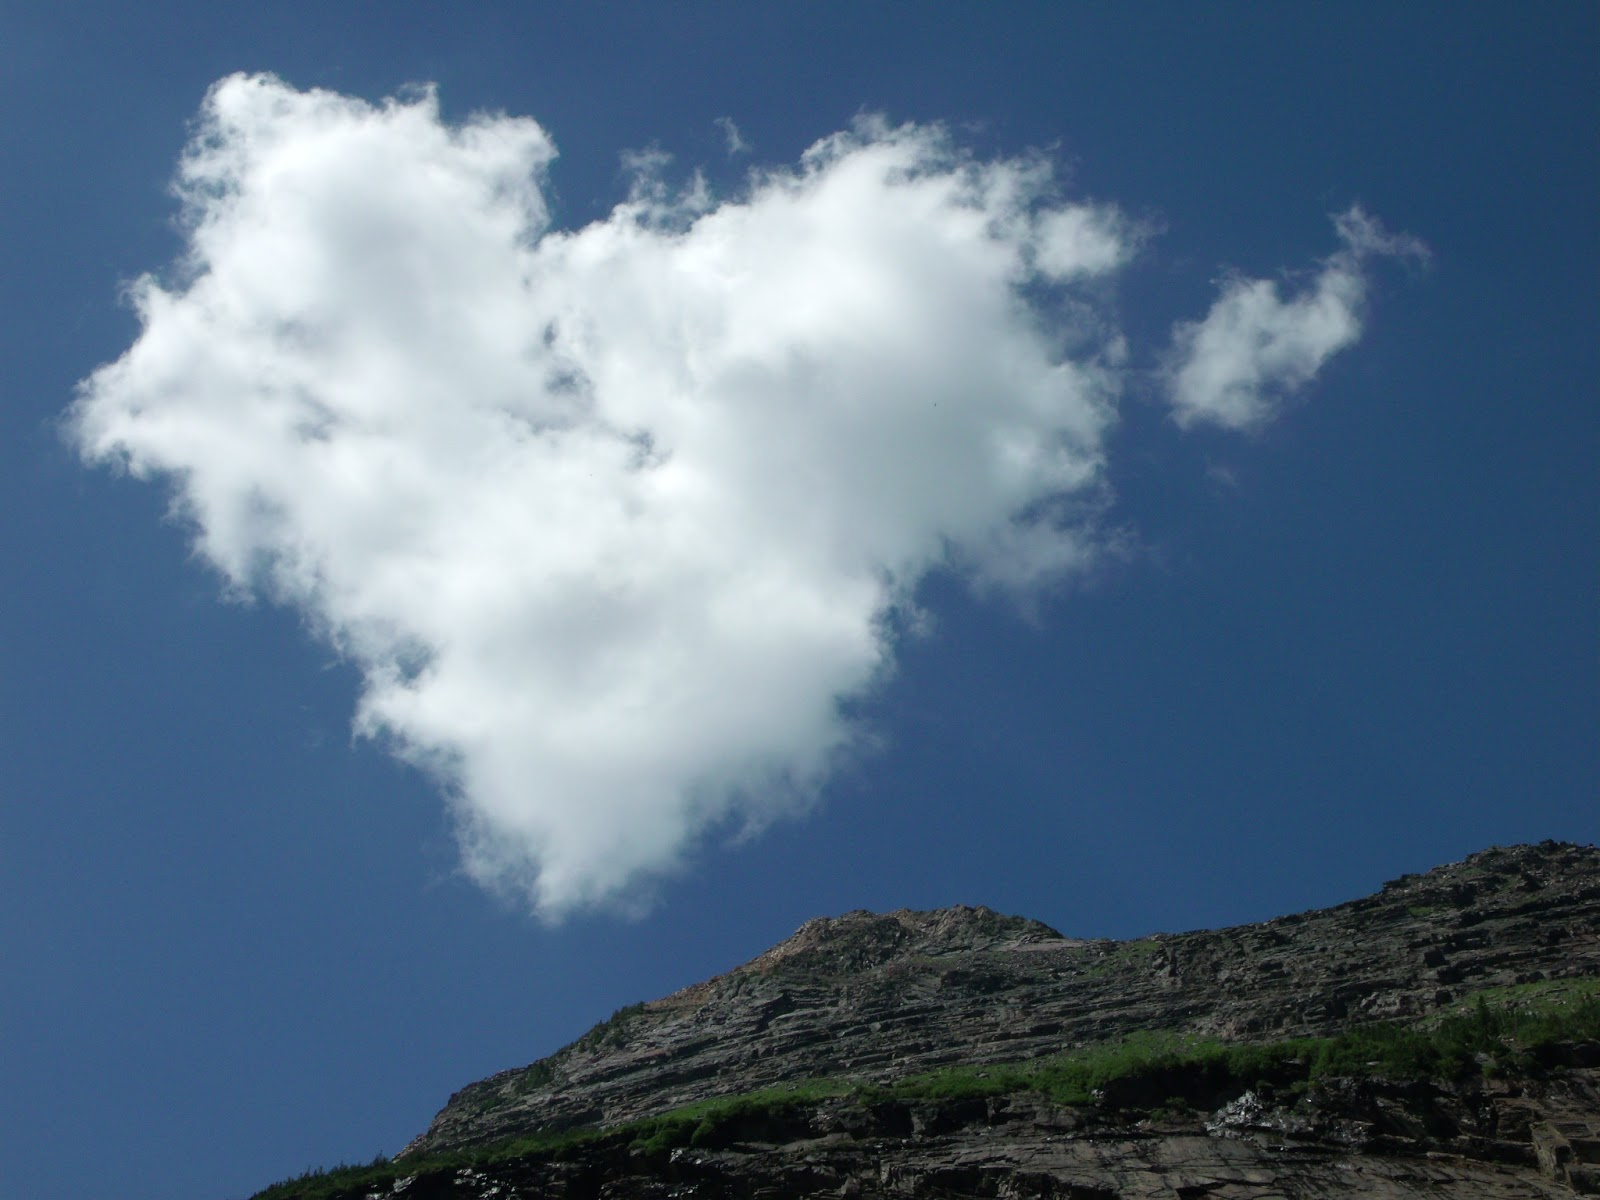 Valentine's Day - Heart shaped cloud wallpapers - ART FOR ...